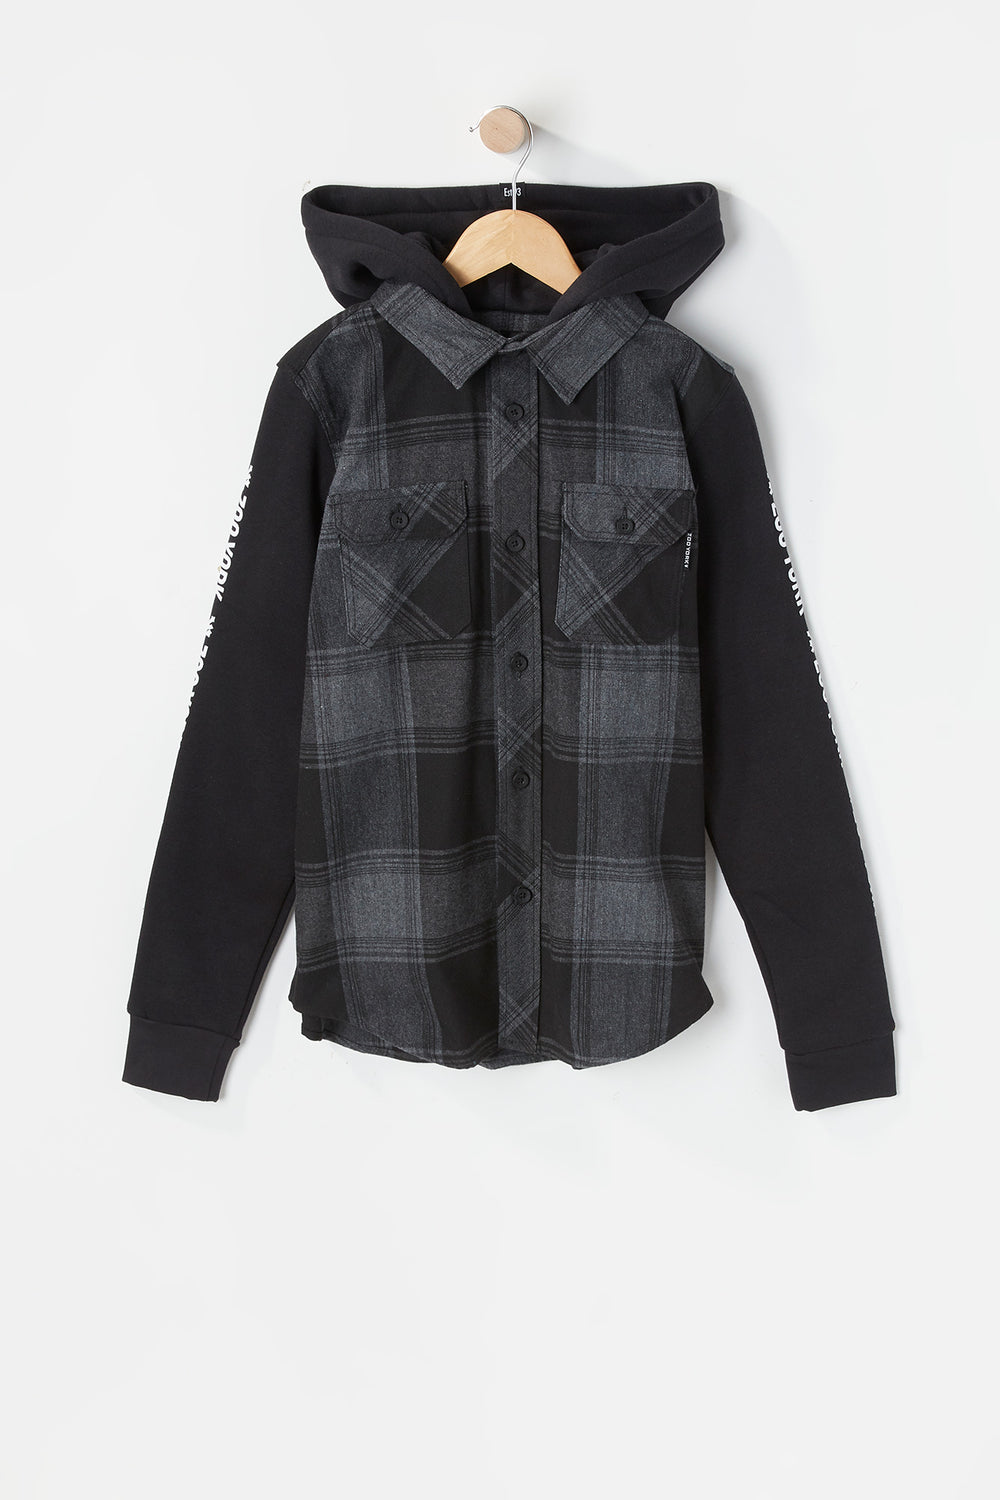 Zoo York Youth Hooded Flannel Button-Up Charcoal